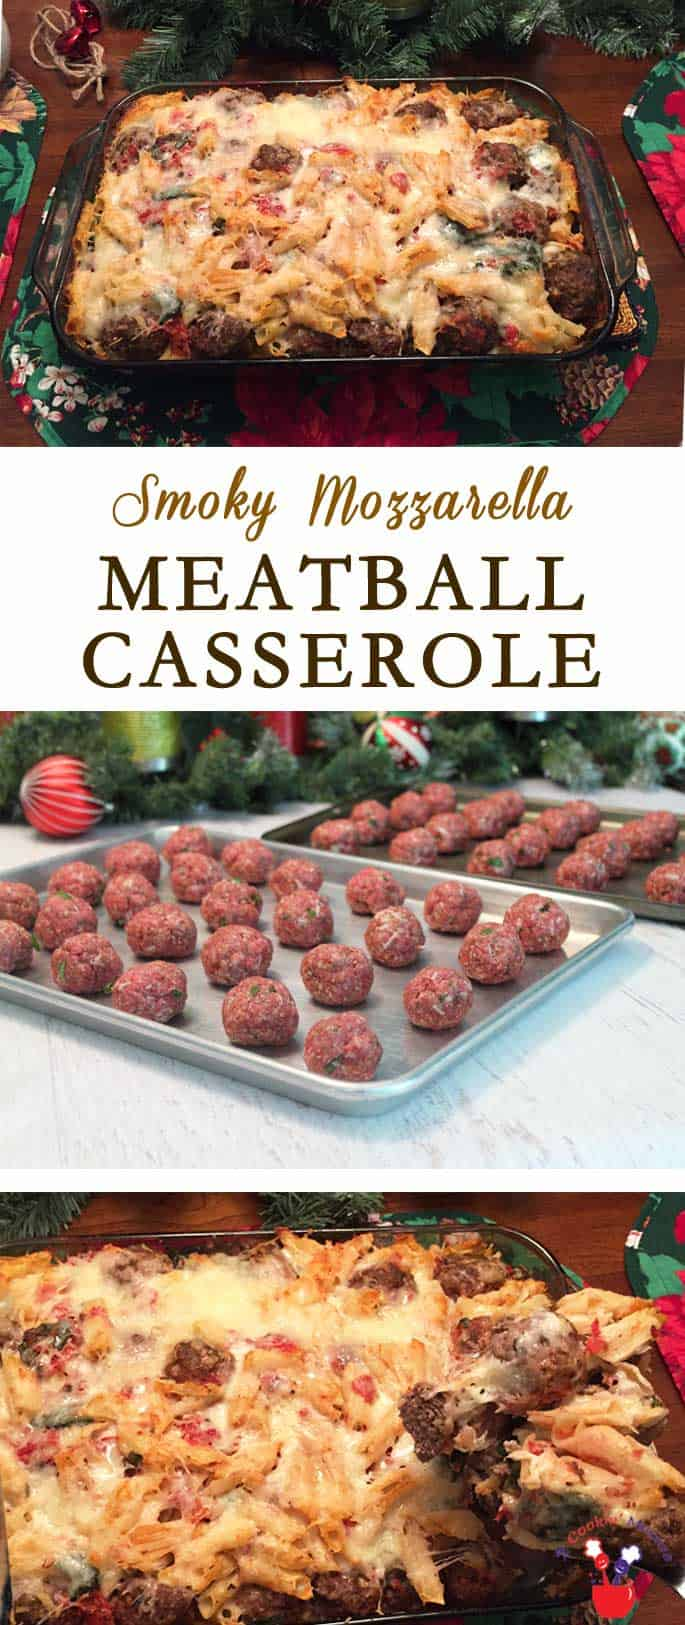 Smoky Mozzarella Meatball Casserole | 2 Cookin Mamas Dinner has never been so good! This Meatball Casserole combines everyone's favorites, meatballs, pasta, cheese and tomatoes, into a delicious casserole that goes together quickly and easily.